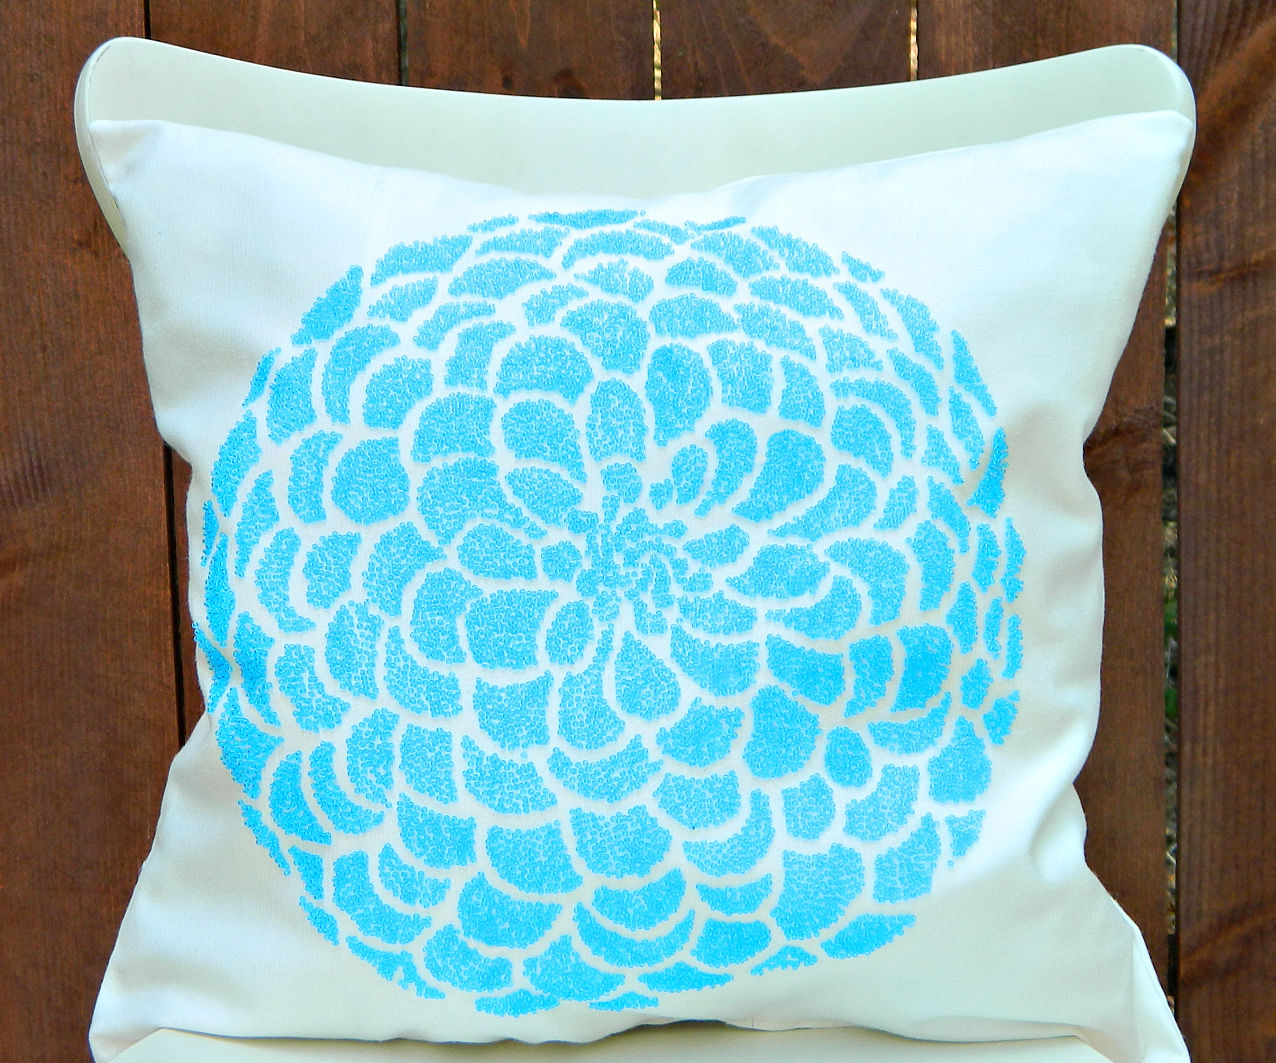 Beaded Pillows (without a stitch)